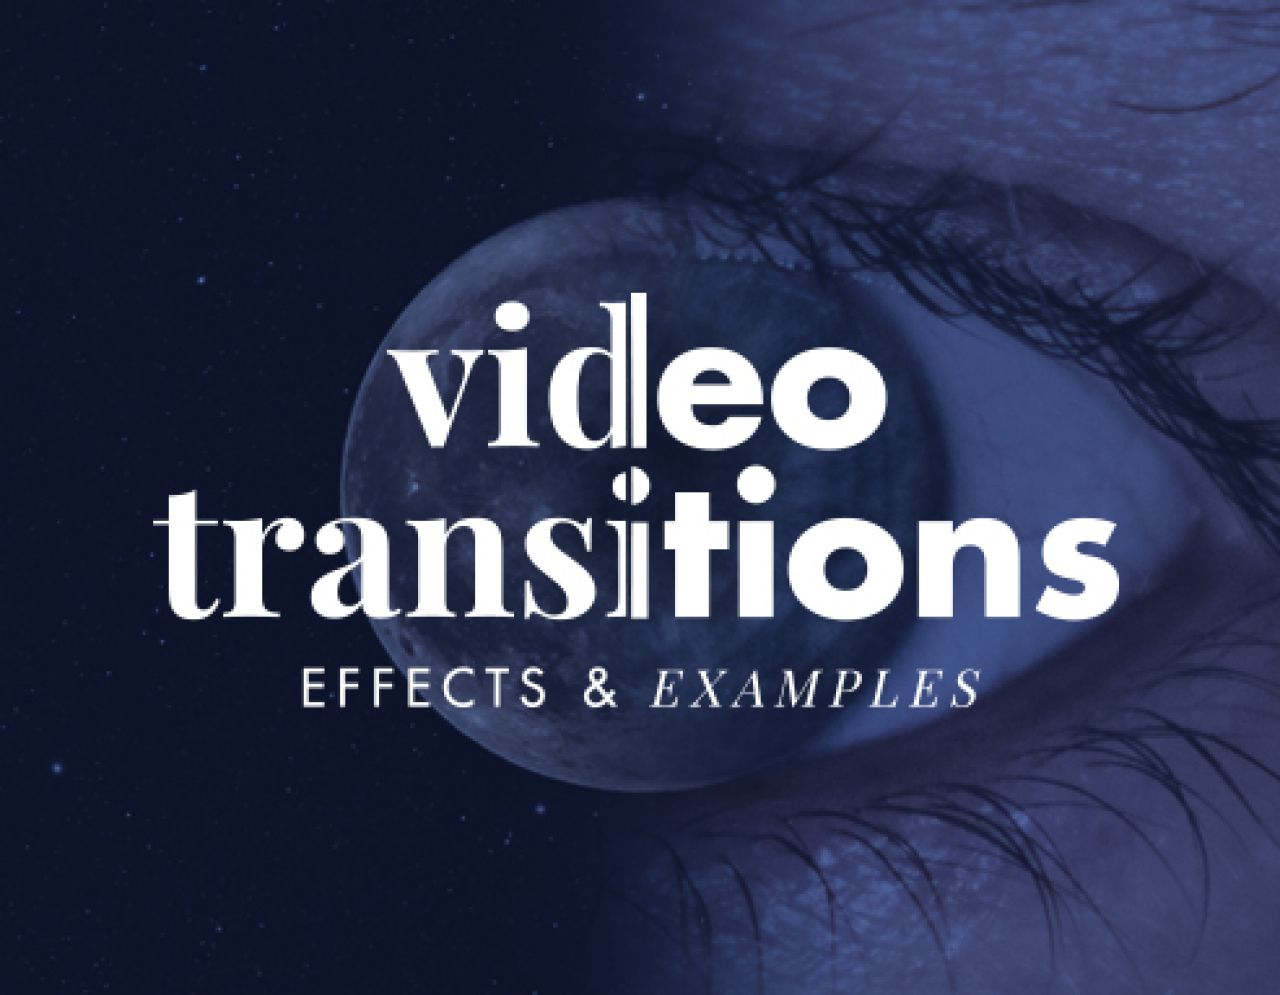 Video Transitions Effects & Examples | Biteable